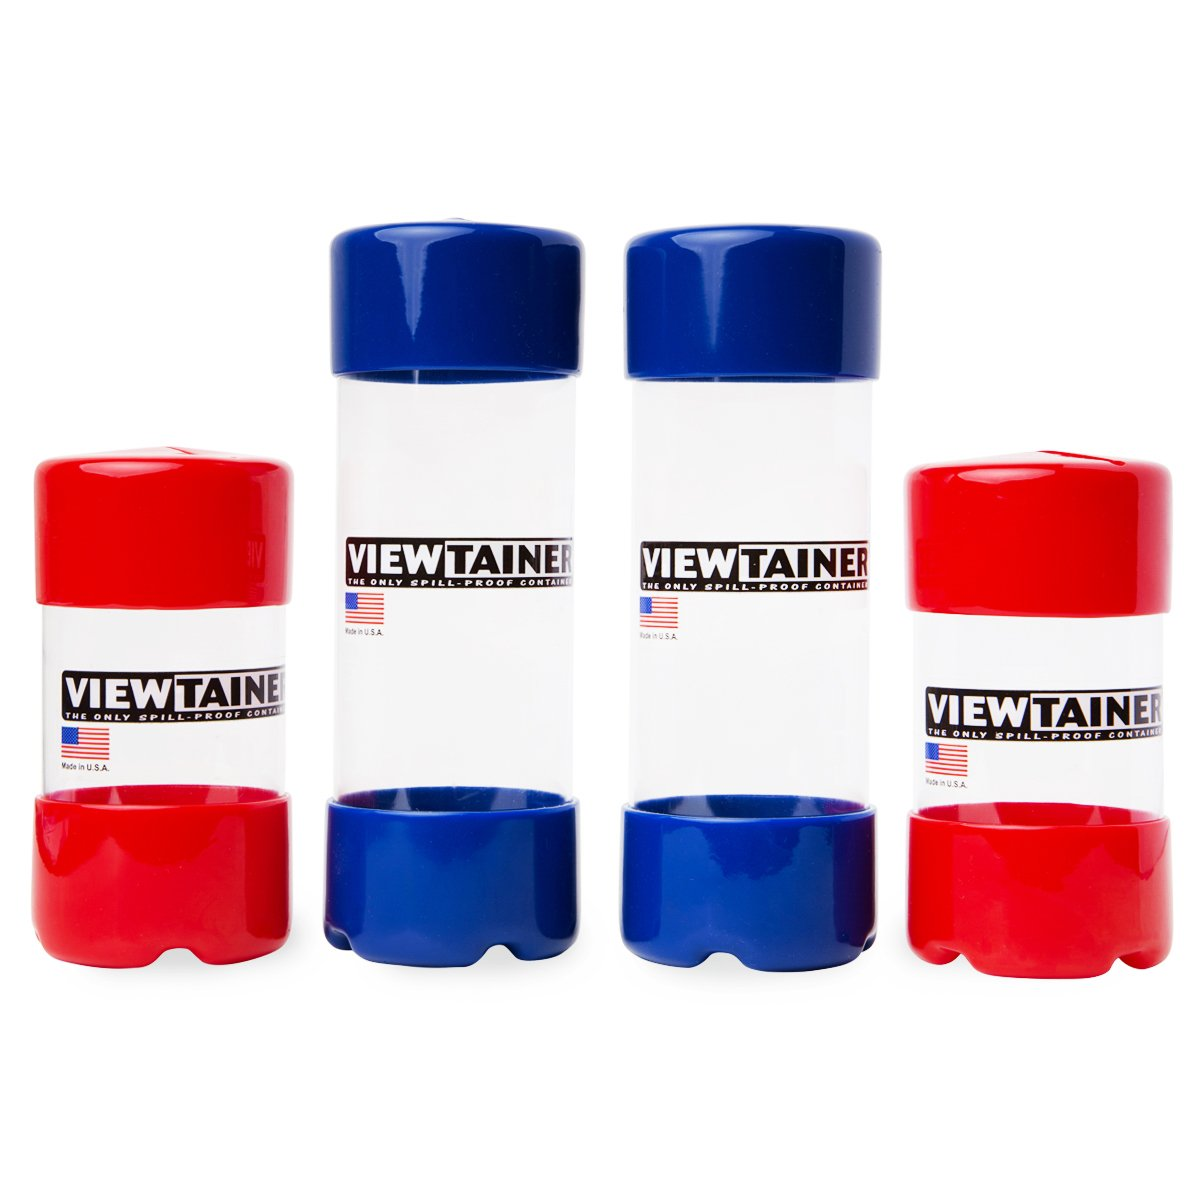 Viewtainer Slit-Top 4 pack - 2'' (Red/Blue) by Viewtainer